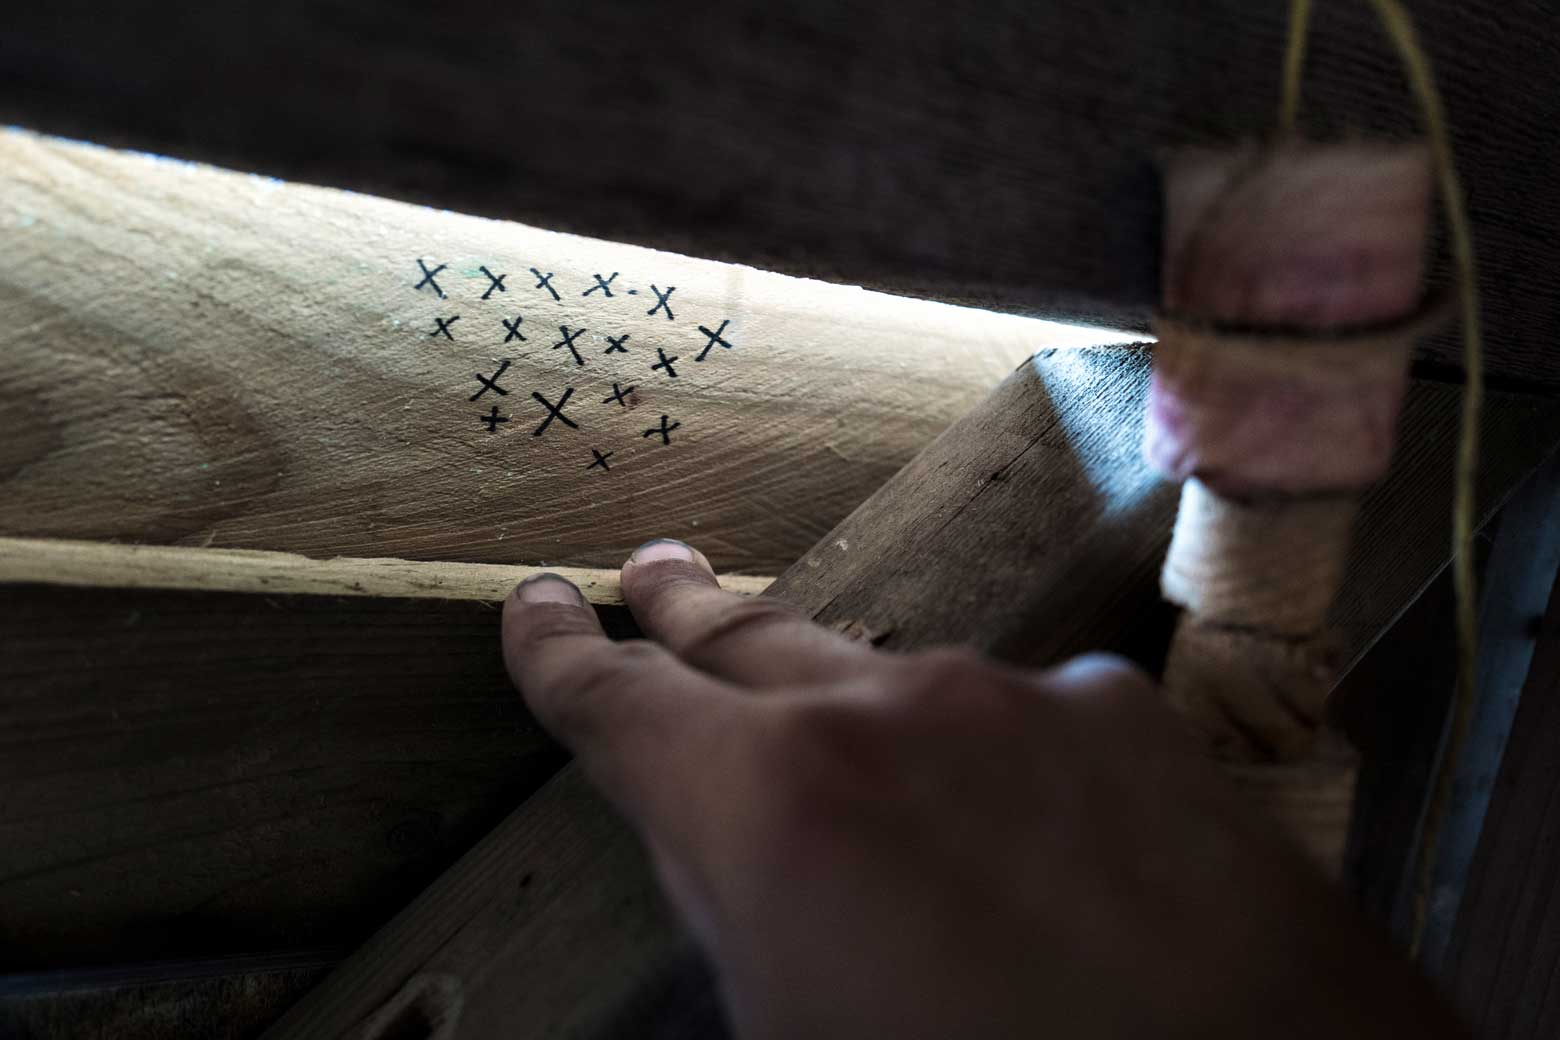 Sea Salt Harvest Tally Marks On Wood | Stories + Objects Luxury Lifestyle Magazine